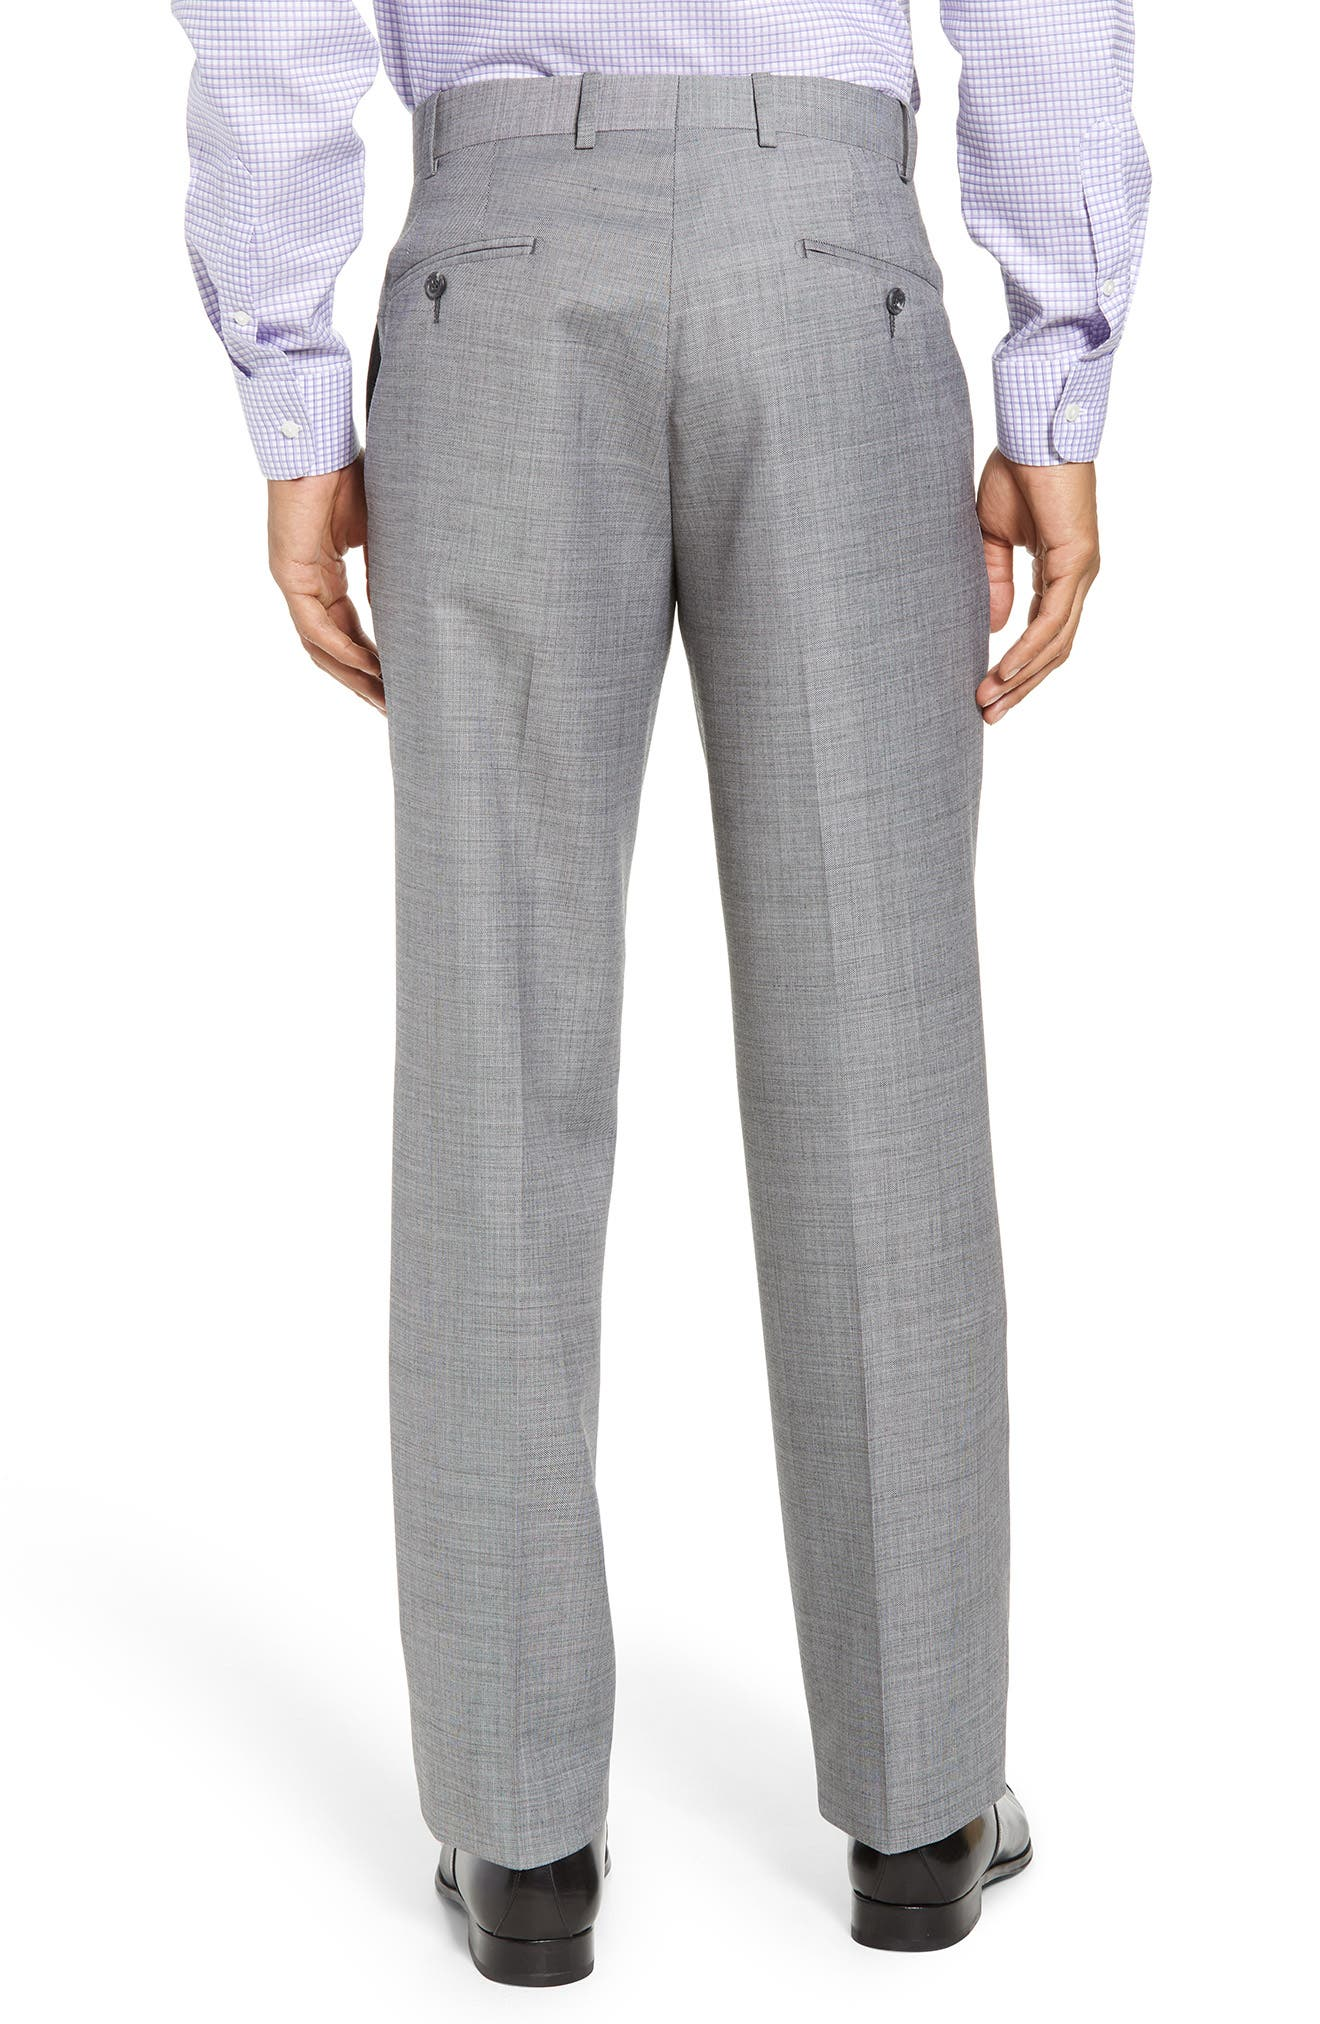 Torino Flat Front Solid Wool Trousers,                             Alternate thumbnail 5, color,